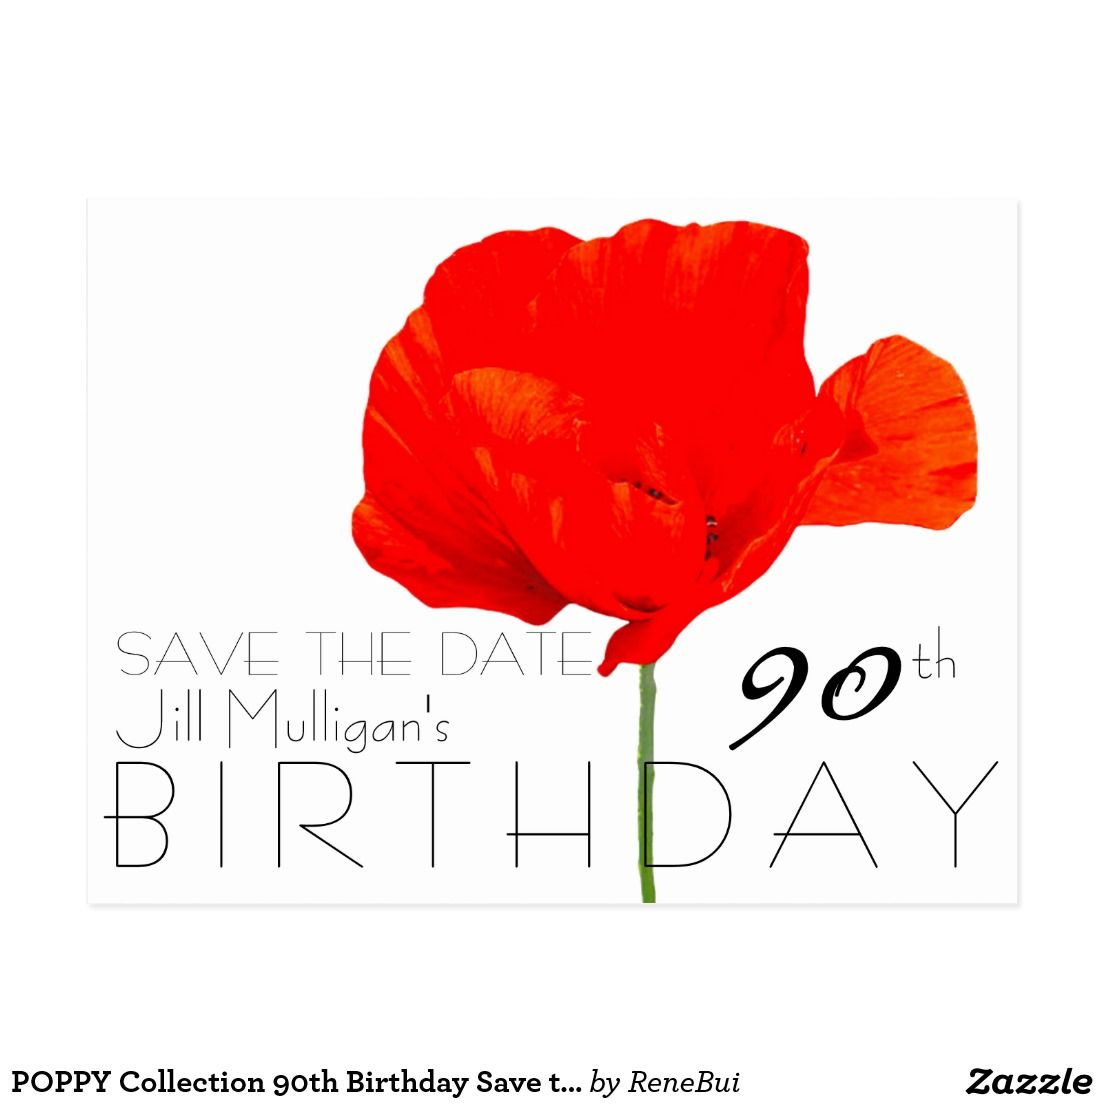 POPPY Collection 90th Birthday Save the Date | Wedding Save The Date ...